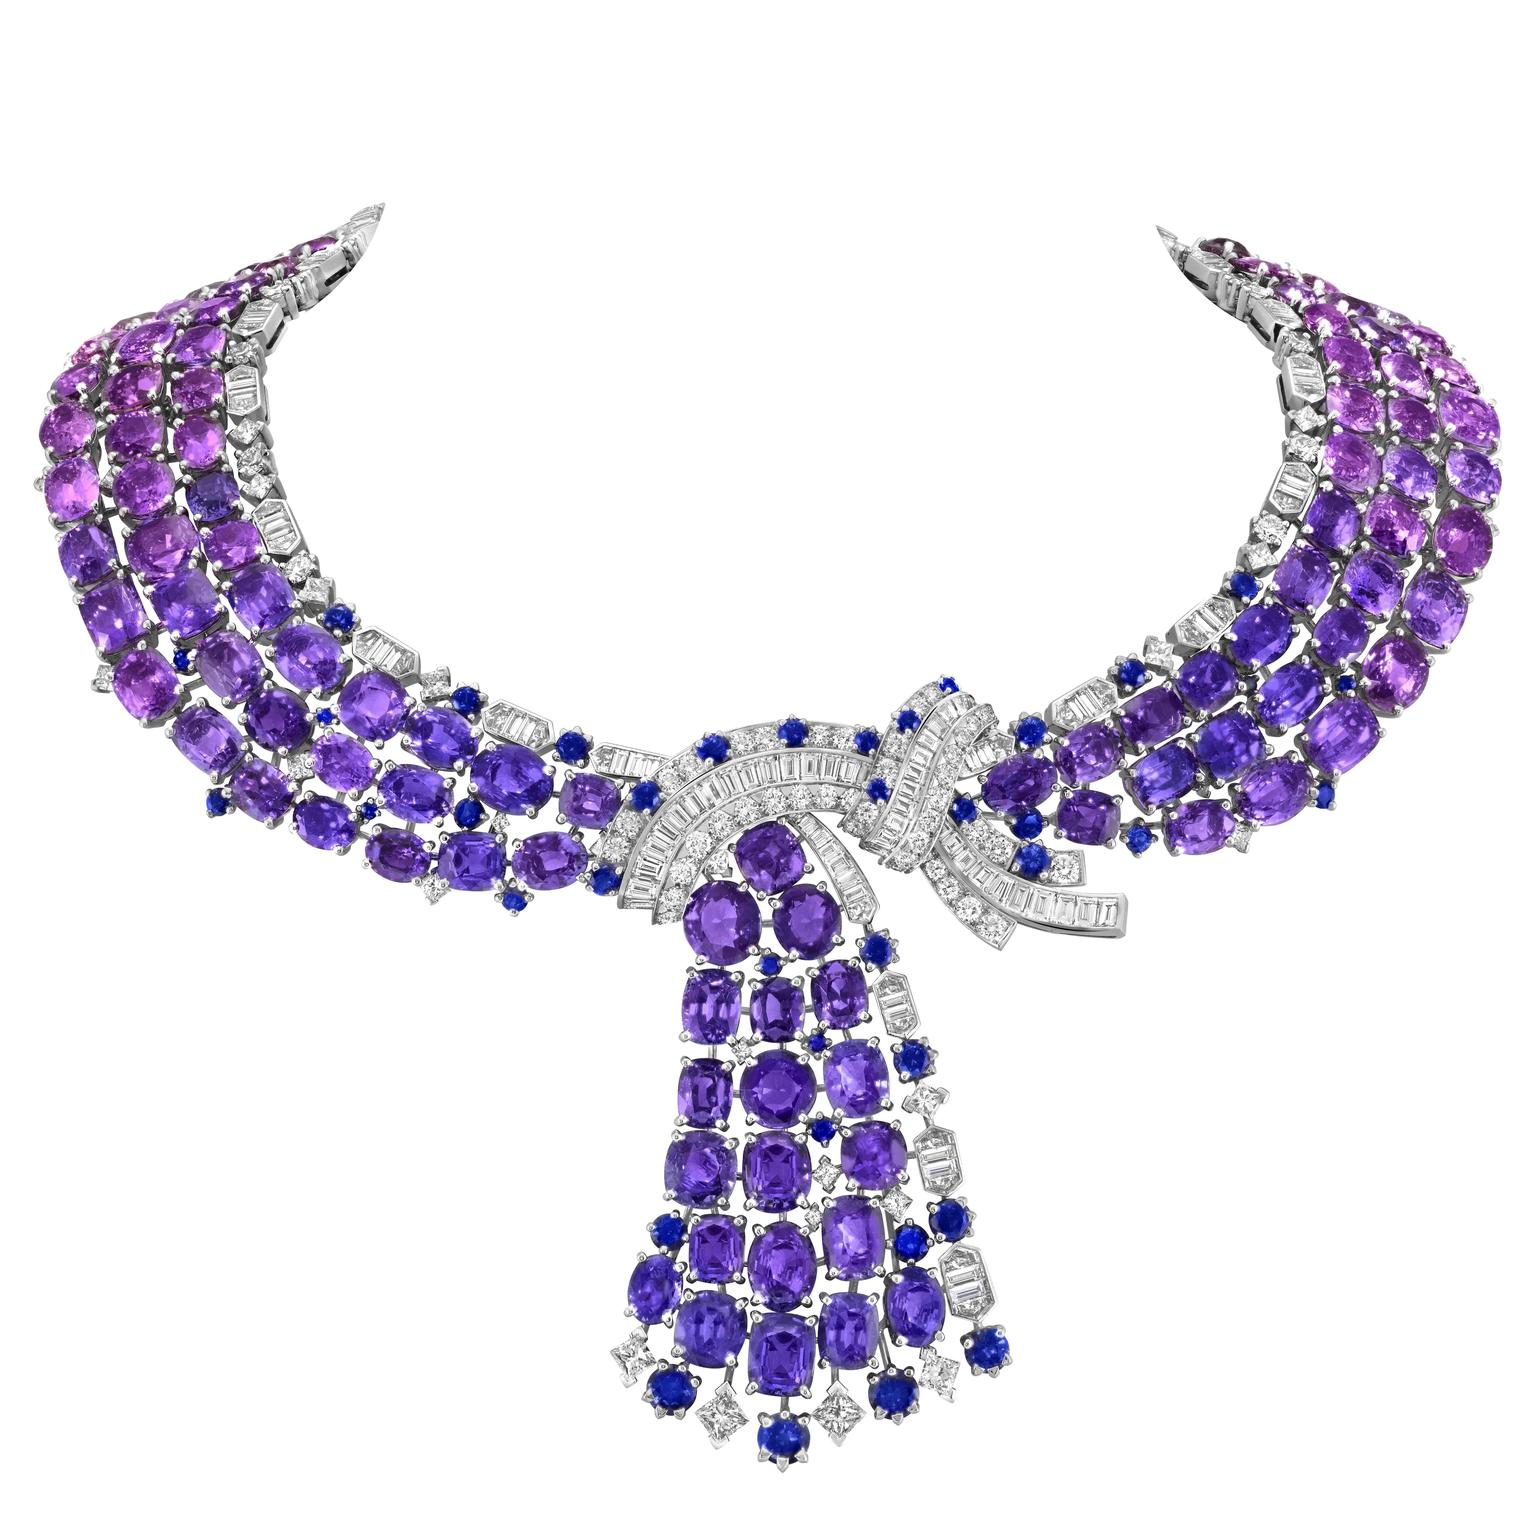 Antennae necklace by Van Cleef & Arpels